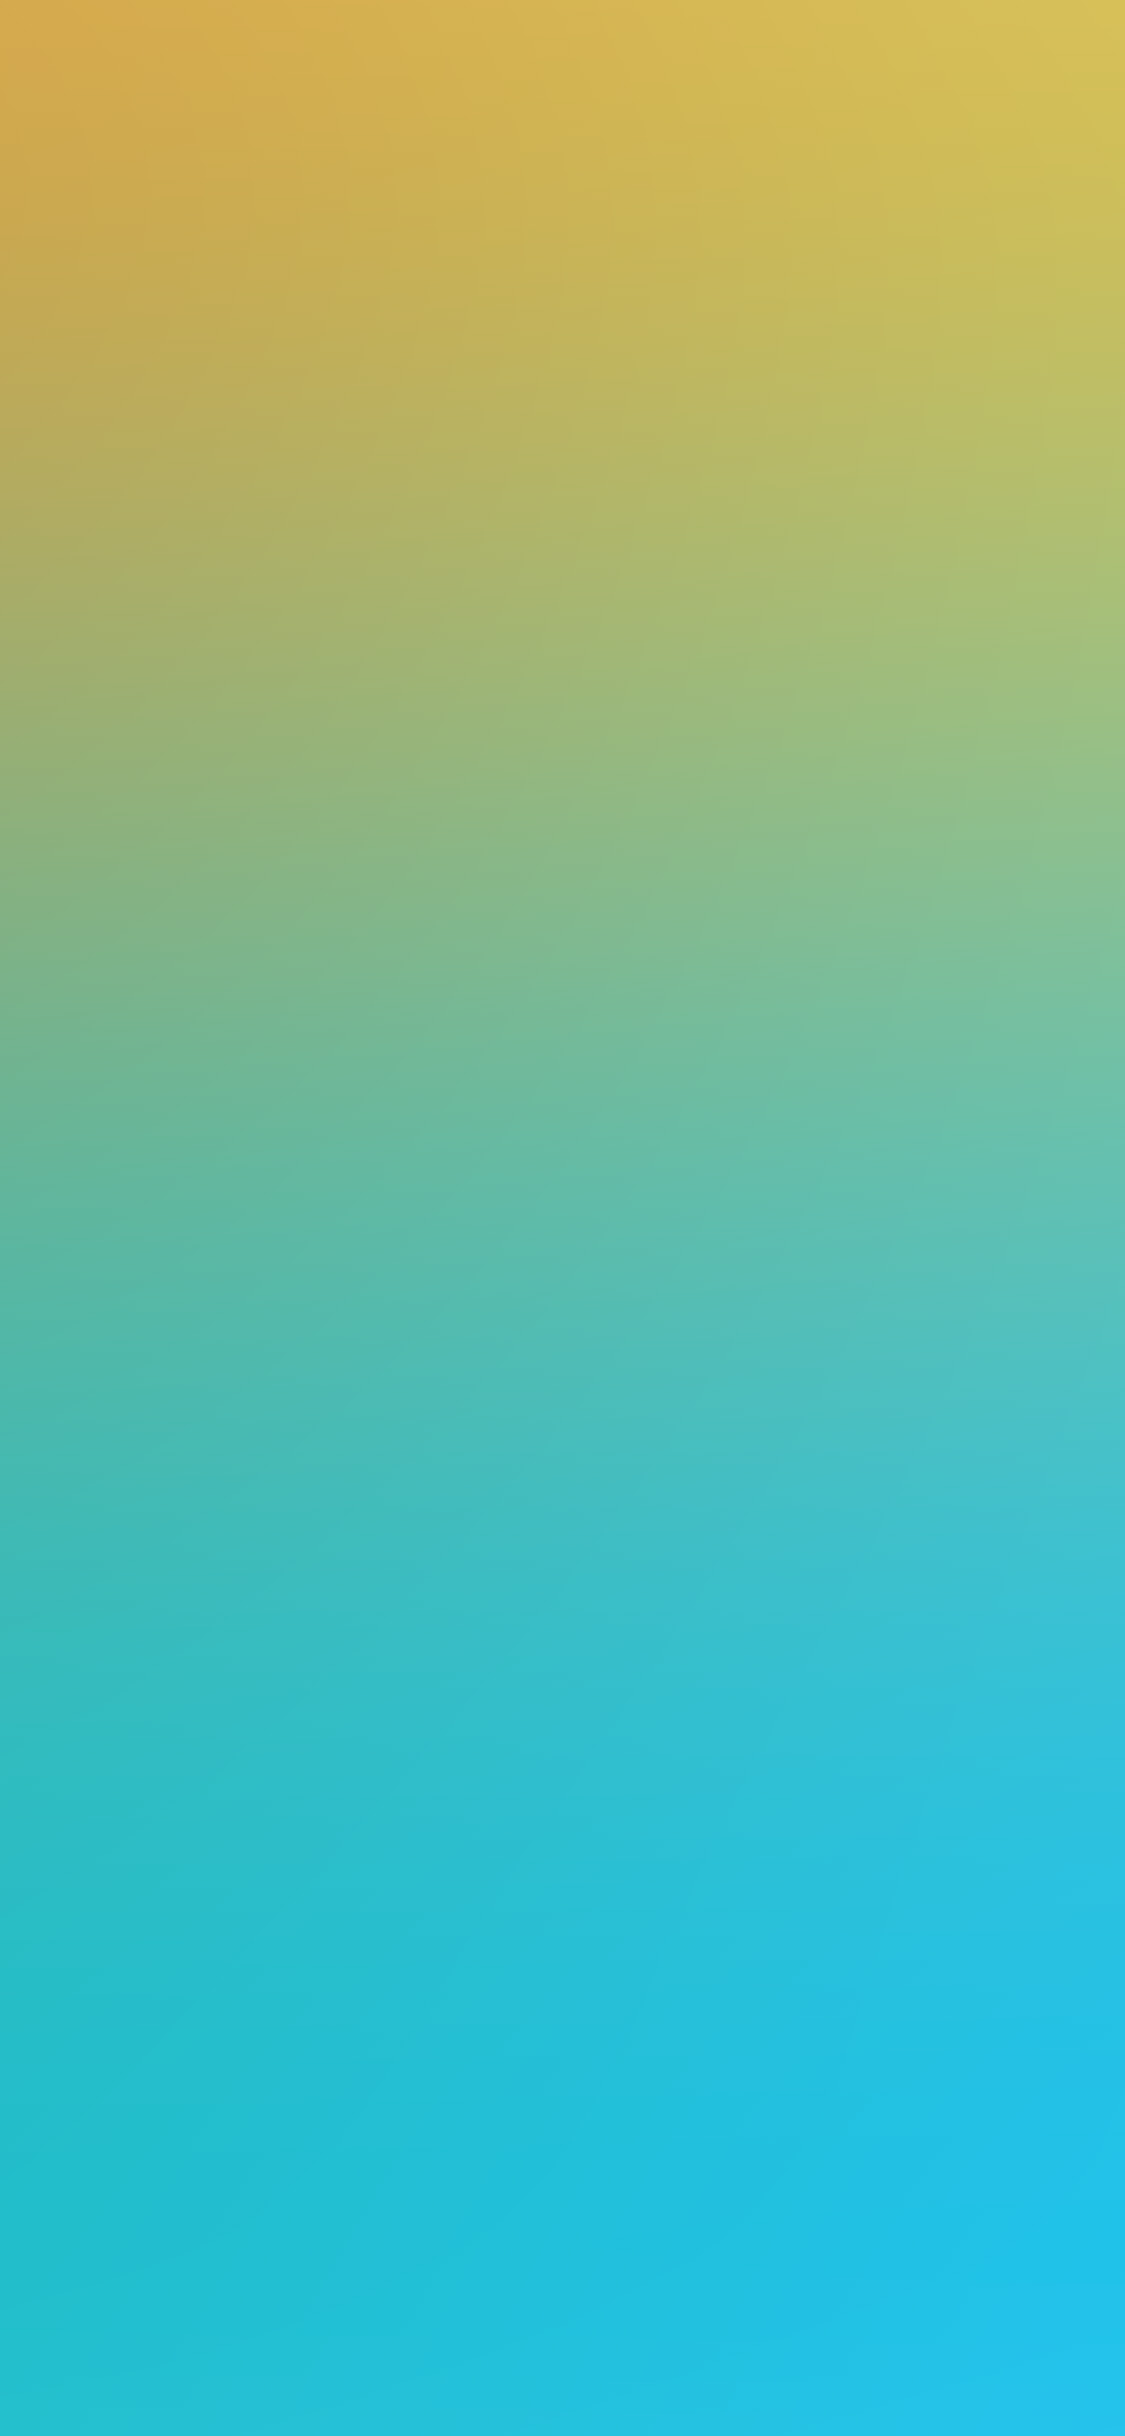 iPhonexpapers.com-Apple-iPhone-wallpaper-sn19-yellow-blue-sea-summer-blur-gradation